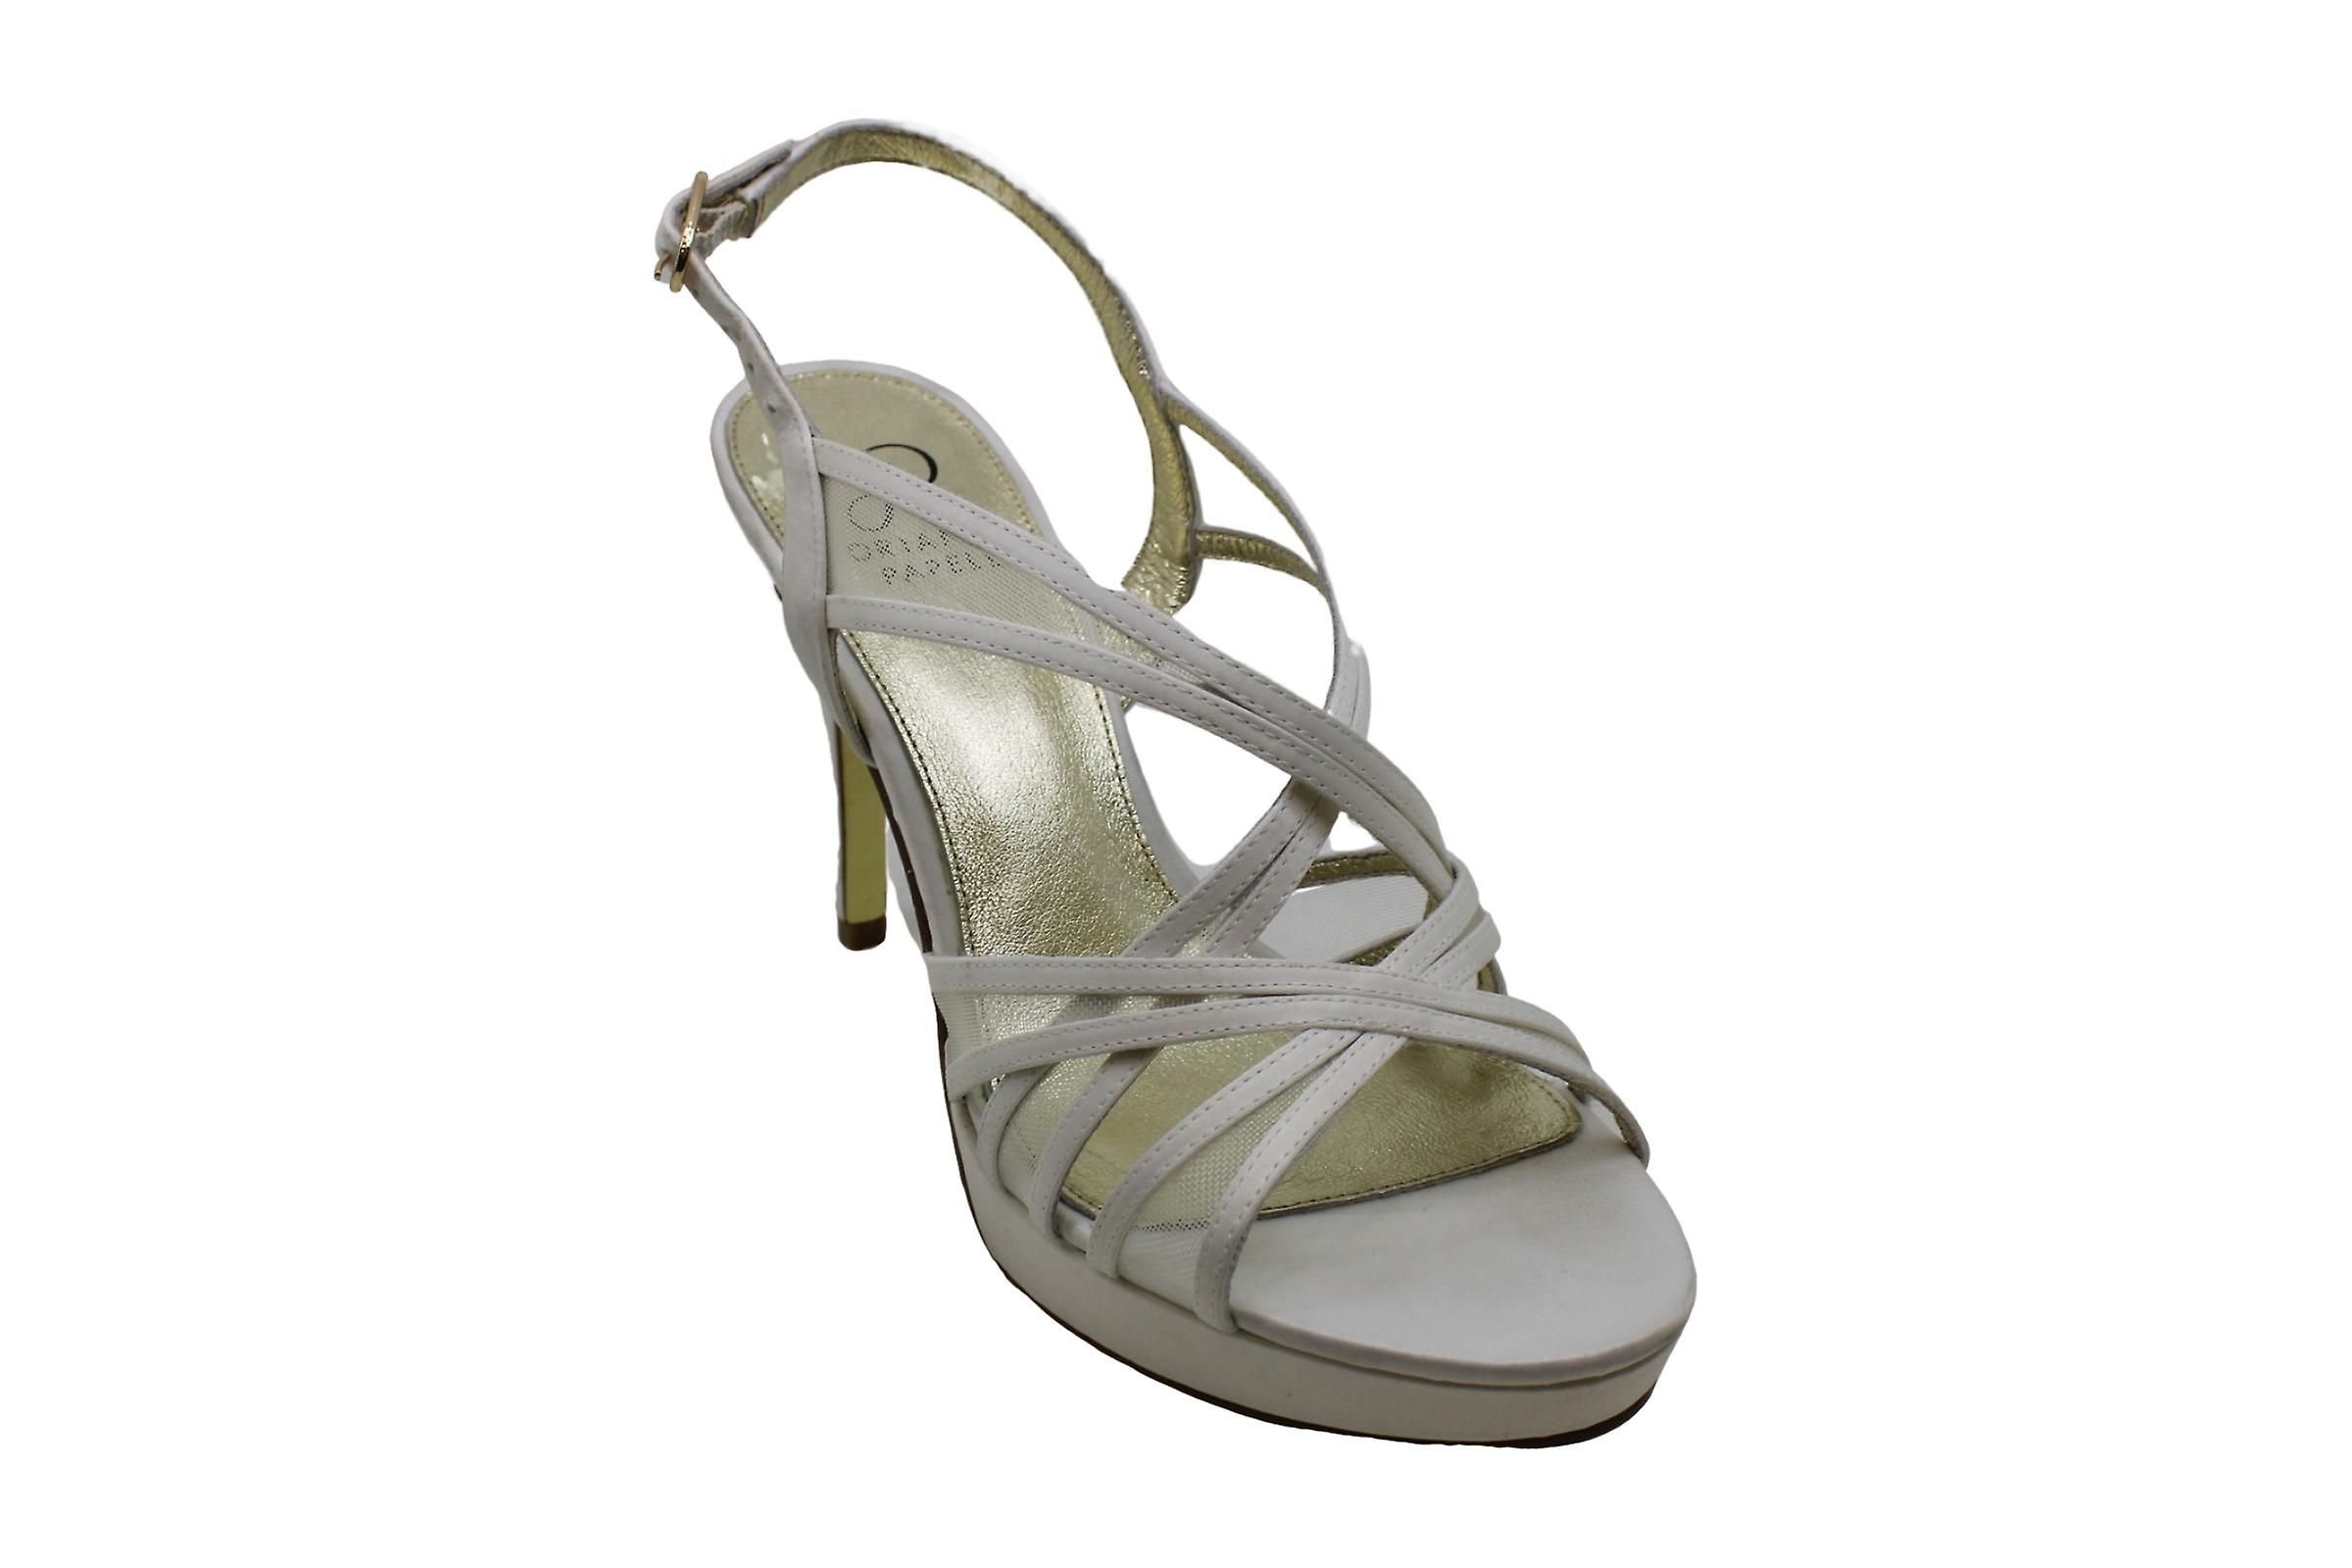 Adrianna Papell Womens Aiden Leather Open Toe Casual Slingback Sandals